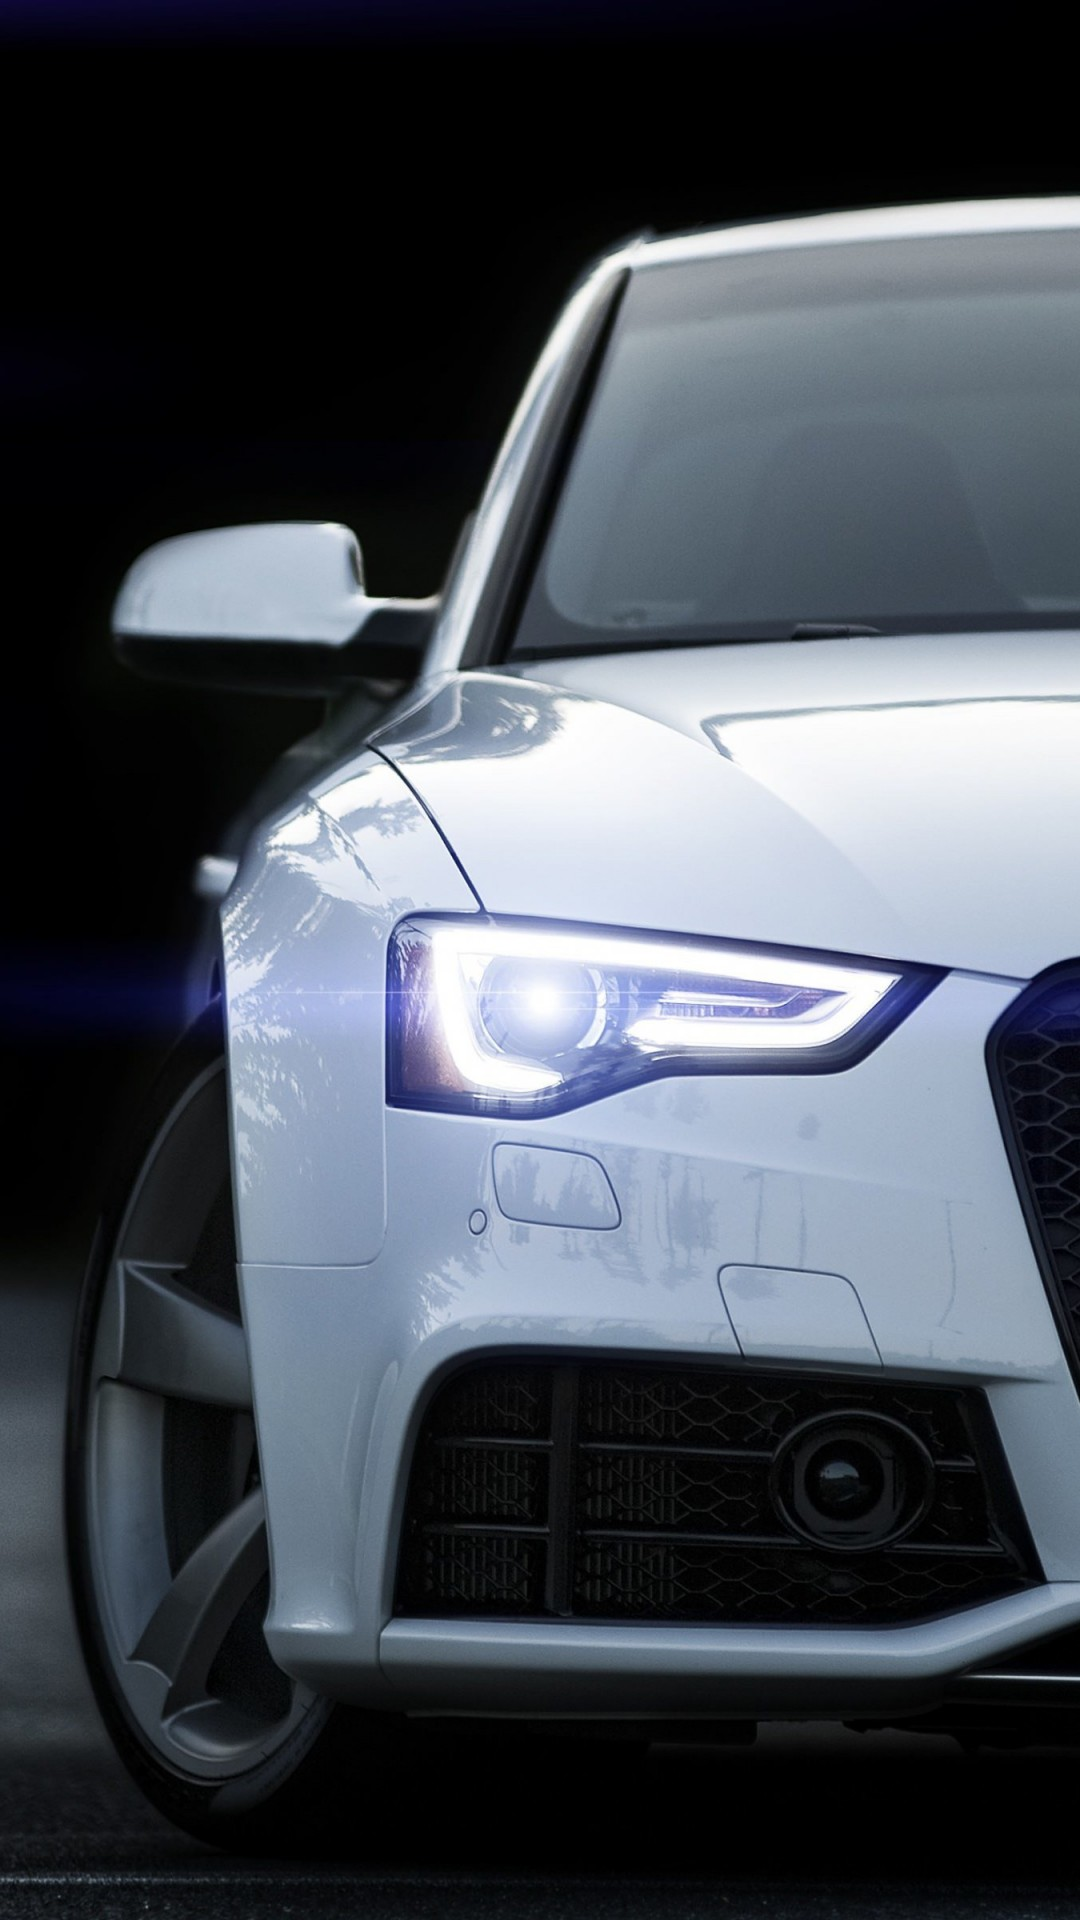 2015 Audi RS 5 Coupe Wallpaper for Motorola Moto X